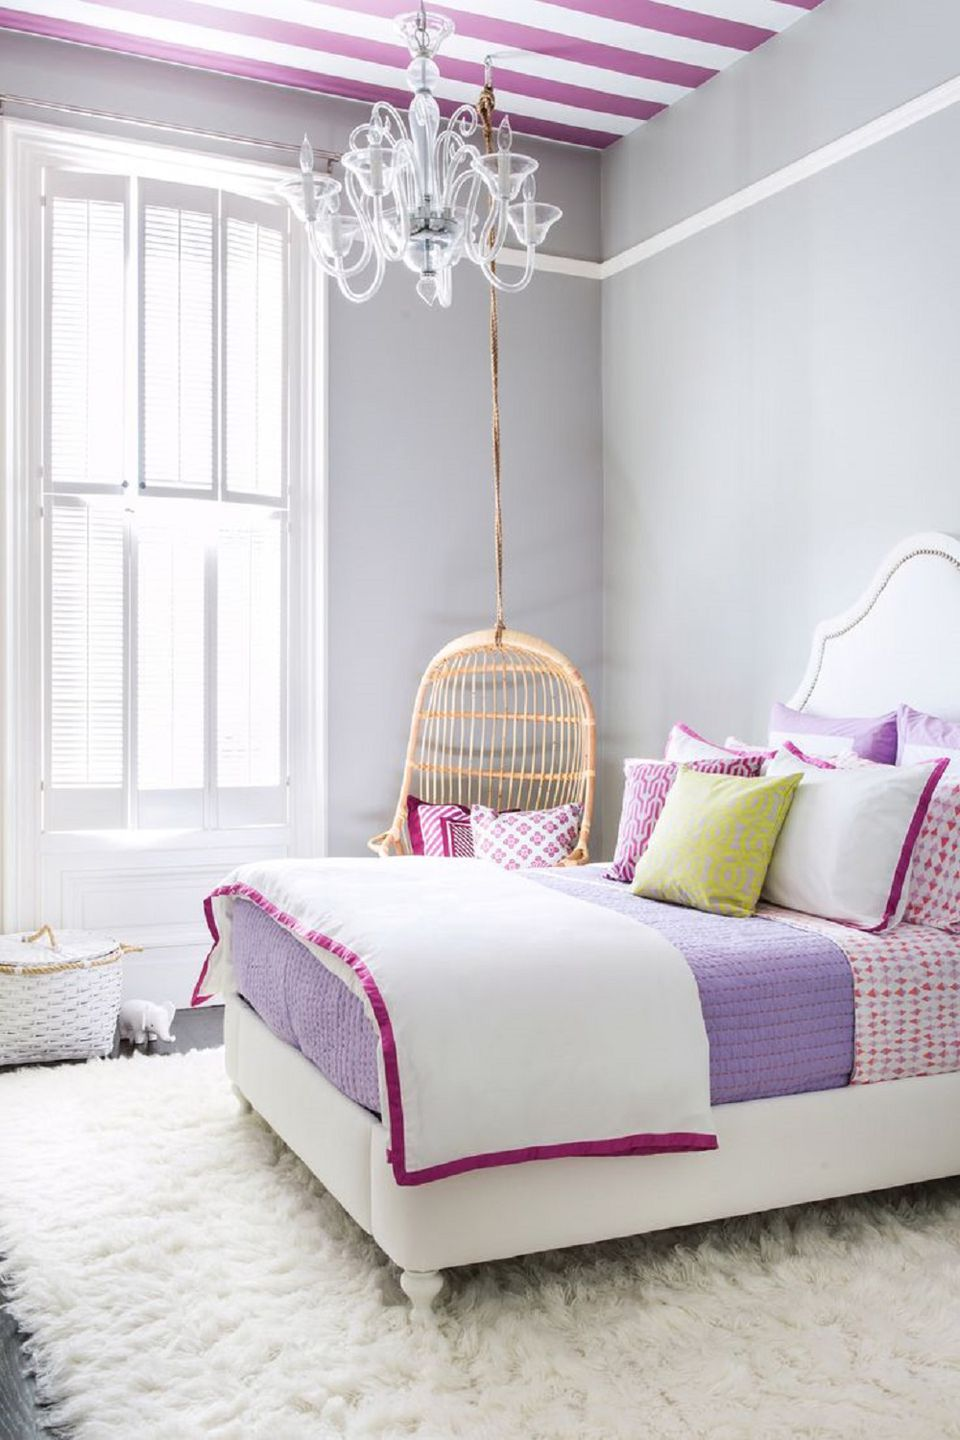 young girls bedroom ideas. Striped ceiling in girl s room Ideas for Decorating a Little Girl Bedroom